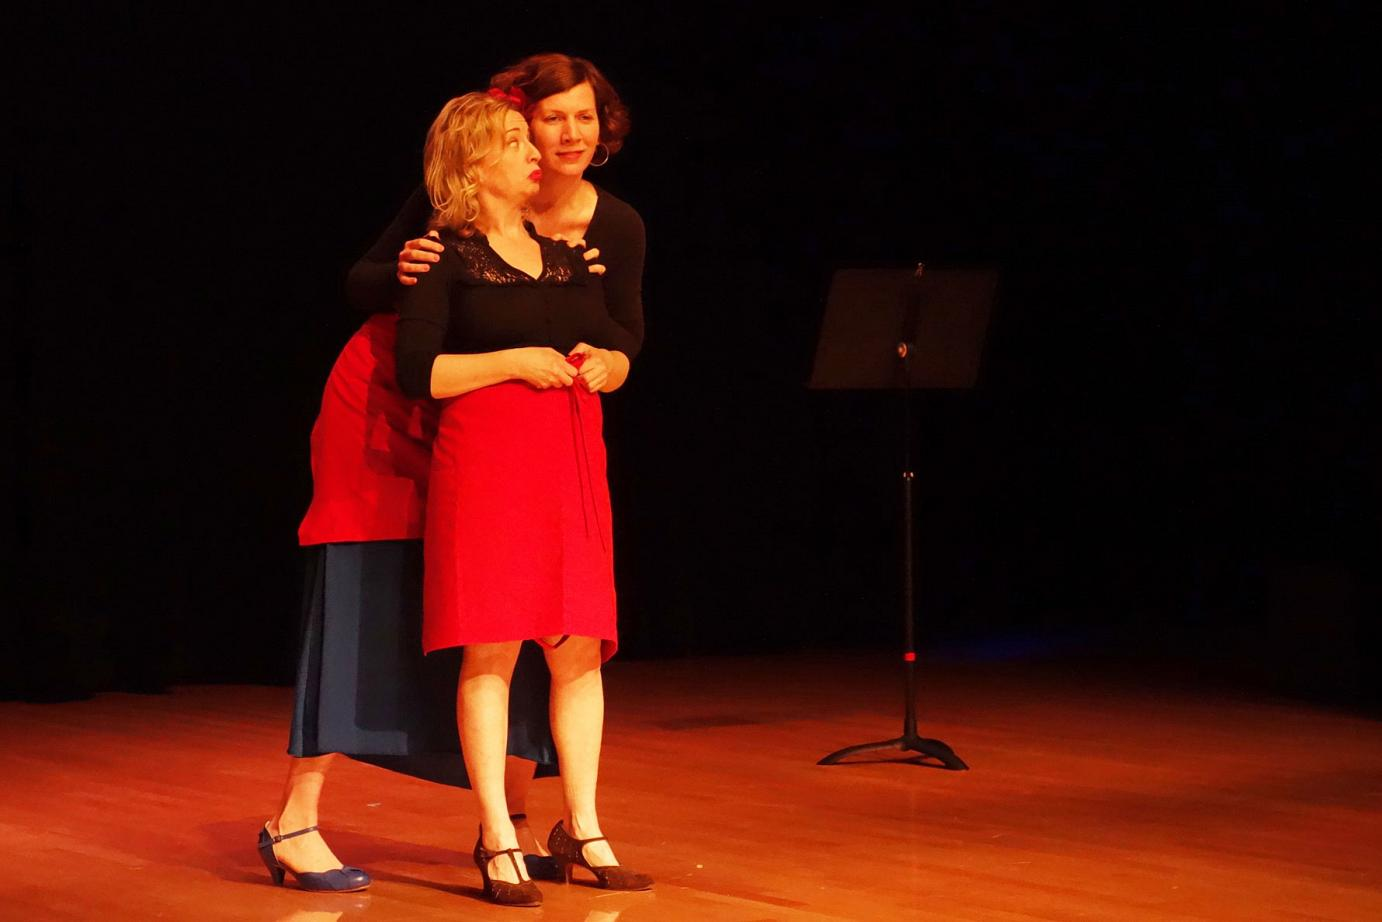 Ways to Woo Enrique, written and performed by Arts Umbrella instructors Jackie Blackmore, Cathy Falkner, Laura Jaszcz, and Junior Theatre Troupe Director Susanne Moniz de Sa